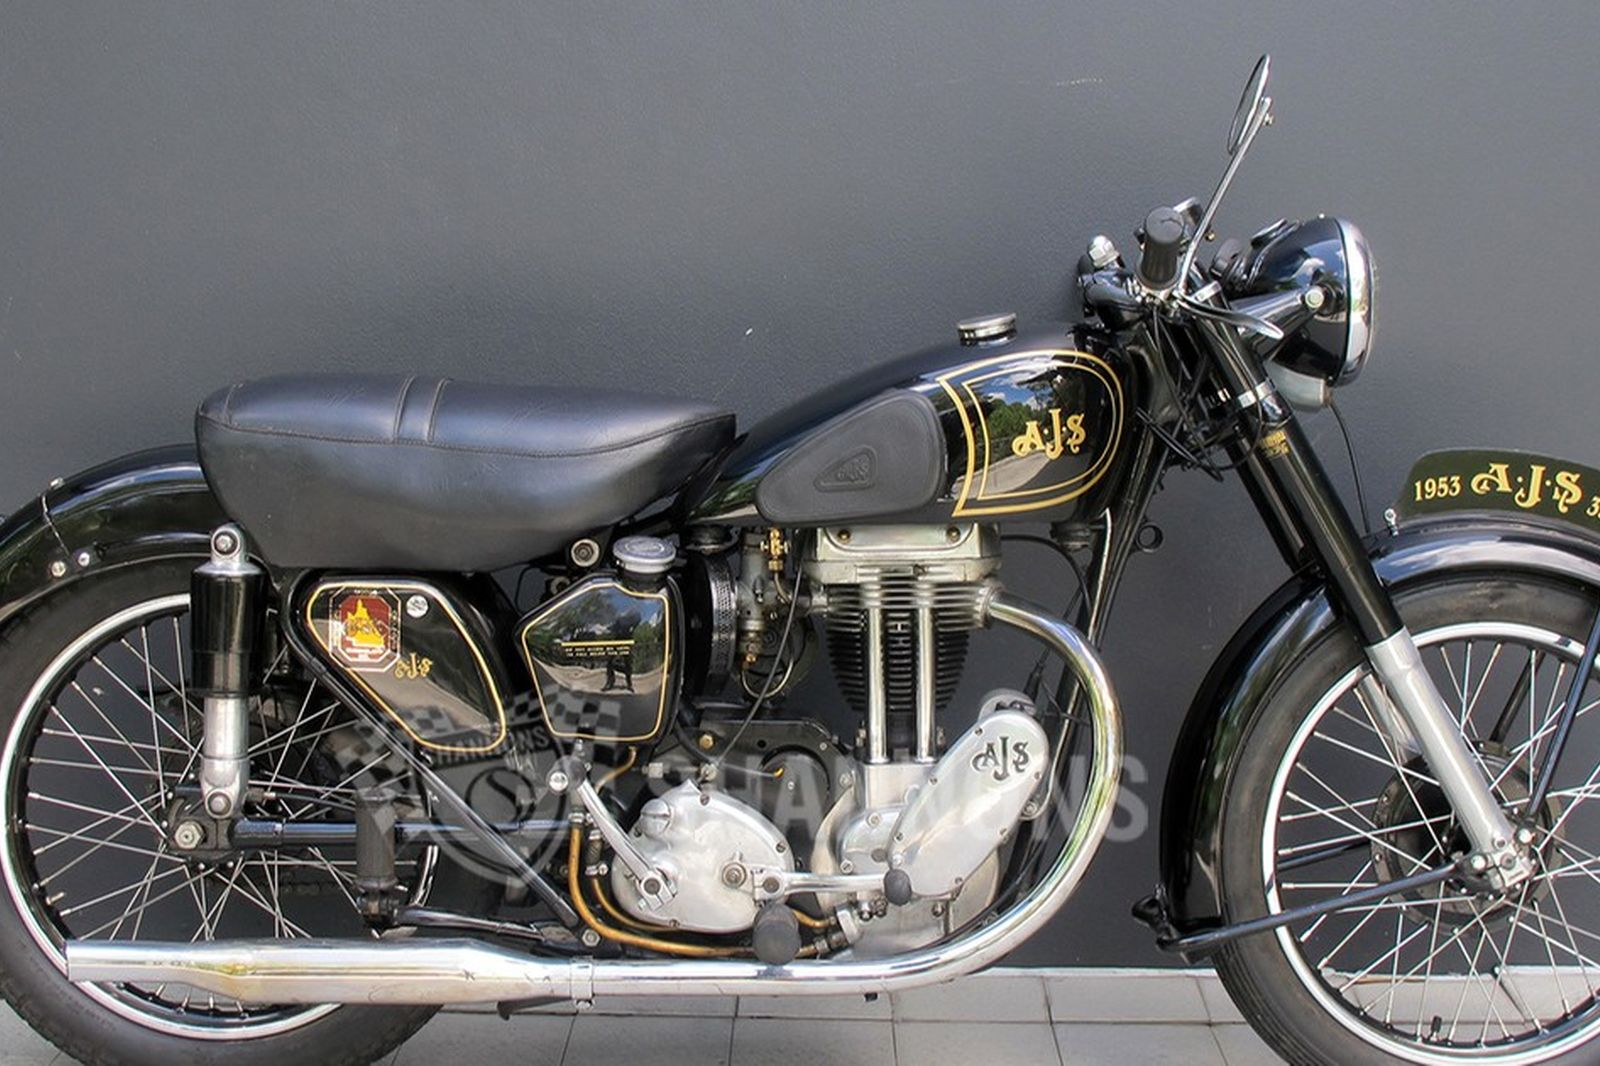 AJS 16MS 350cc Motorcycle